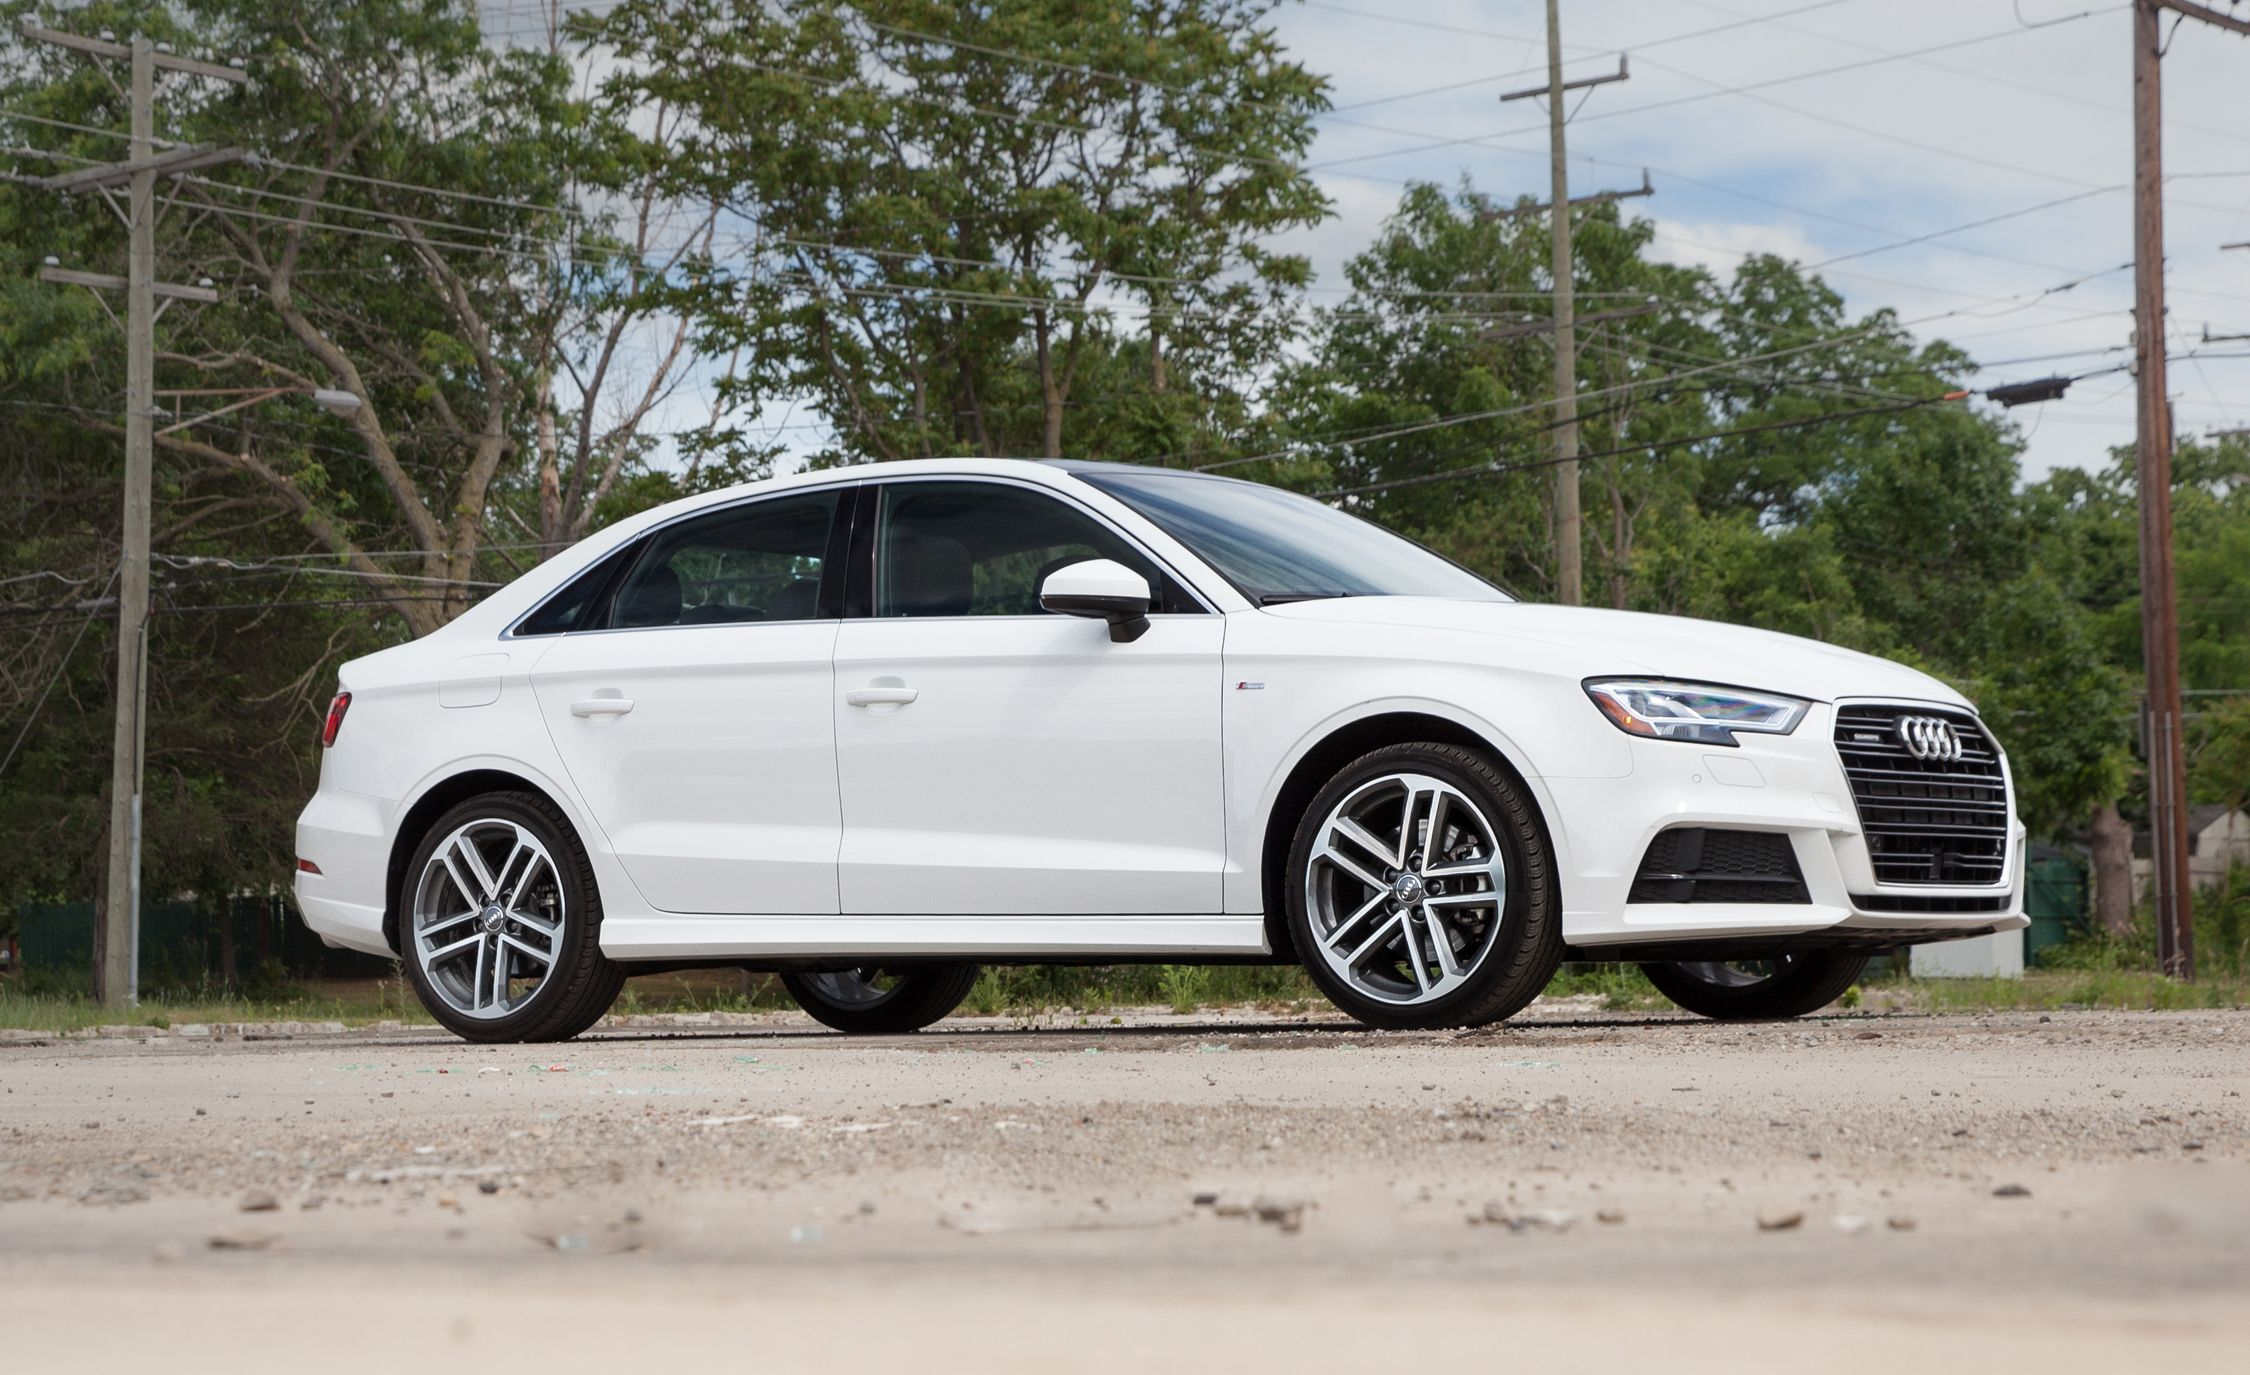 Audi A3 Price, Photos, And Specs